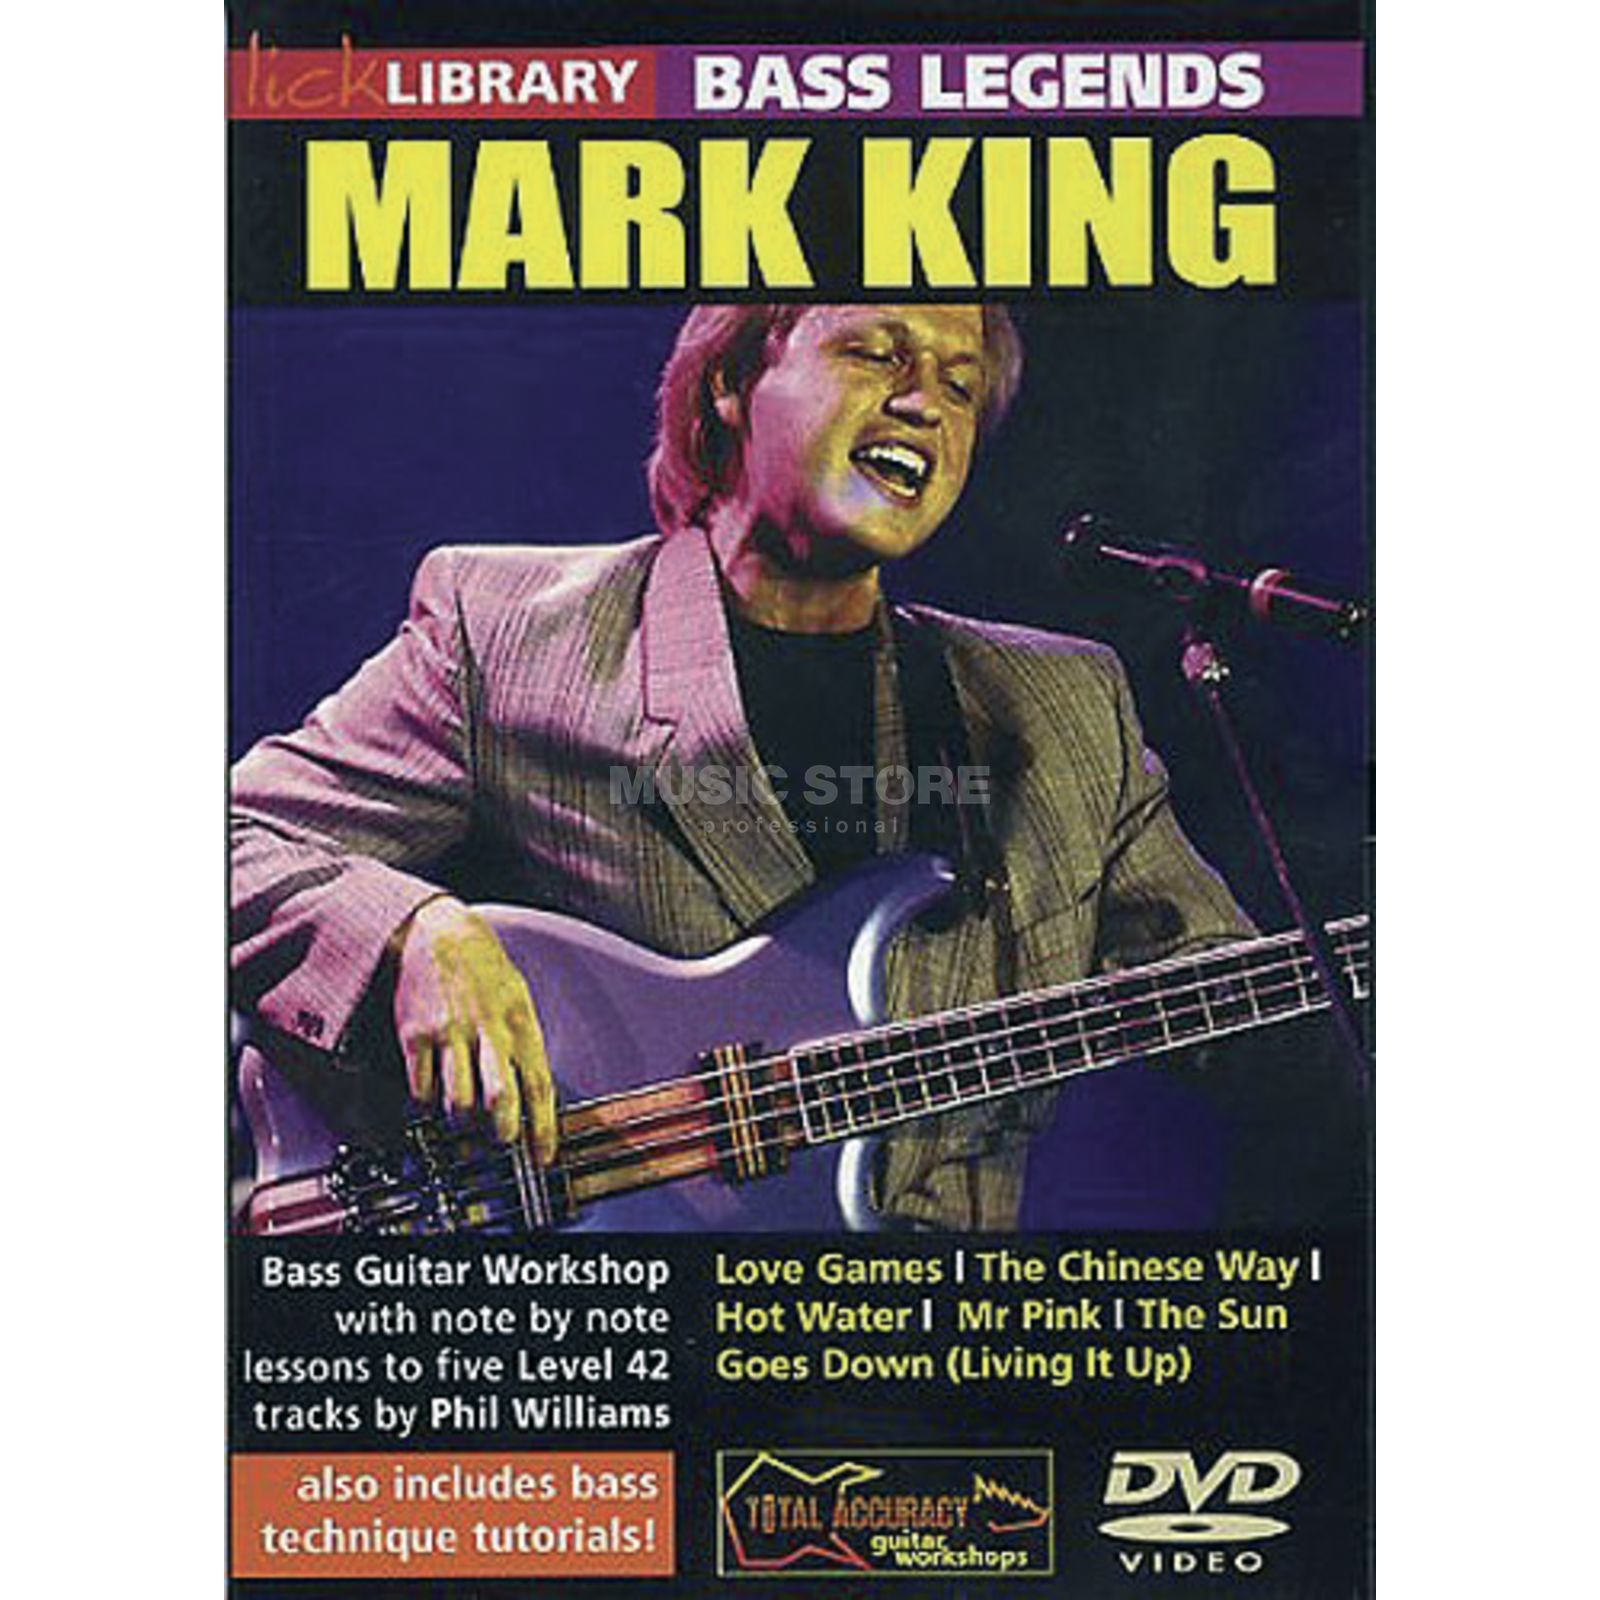 Roadrock International Lick Library: Bass Legends - Mark King DVD Produktbild